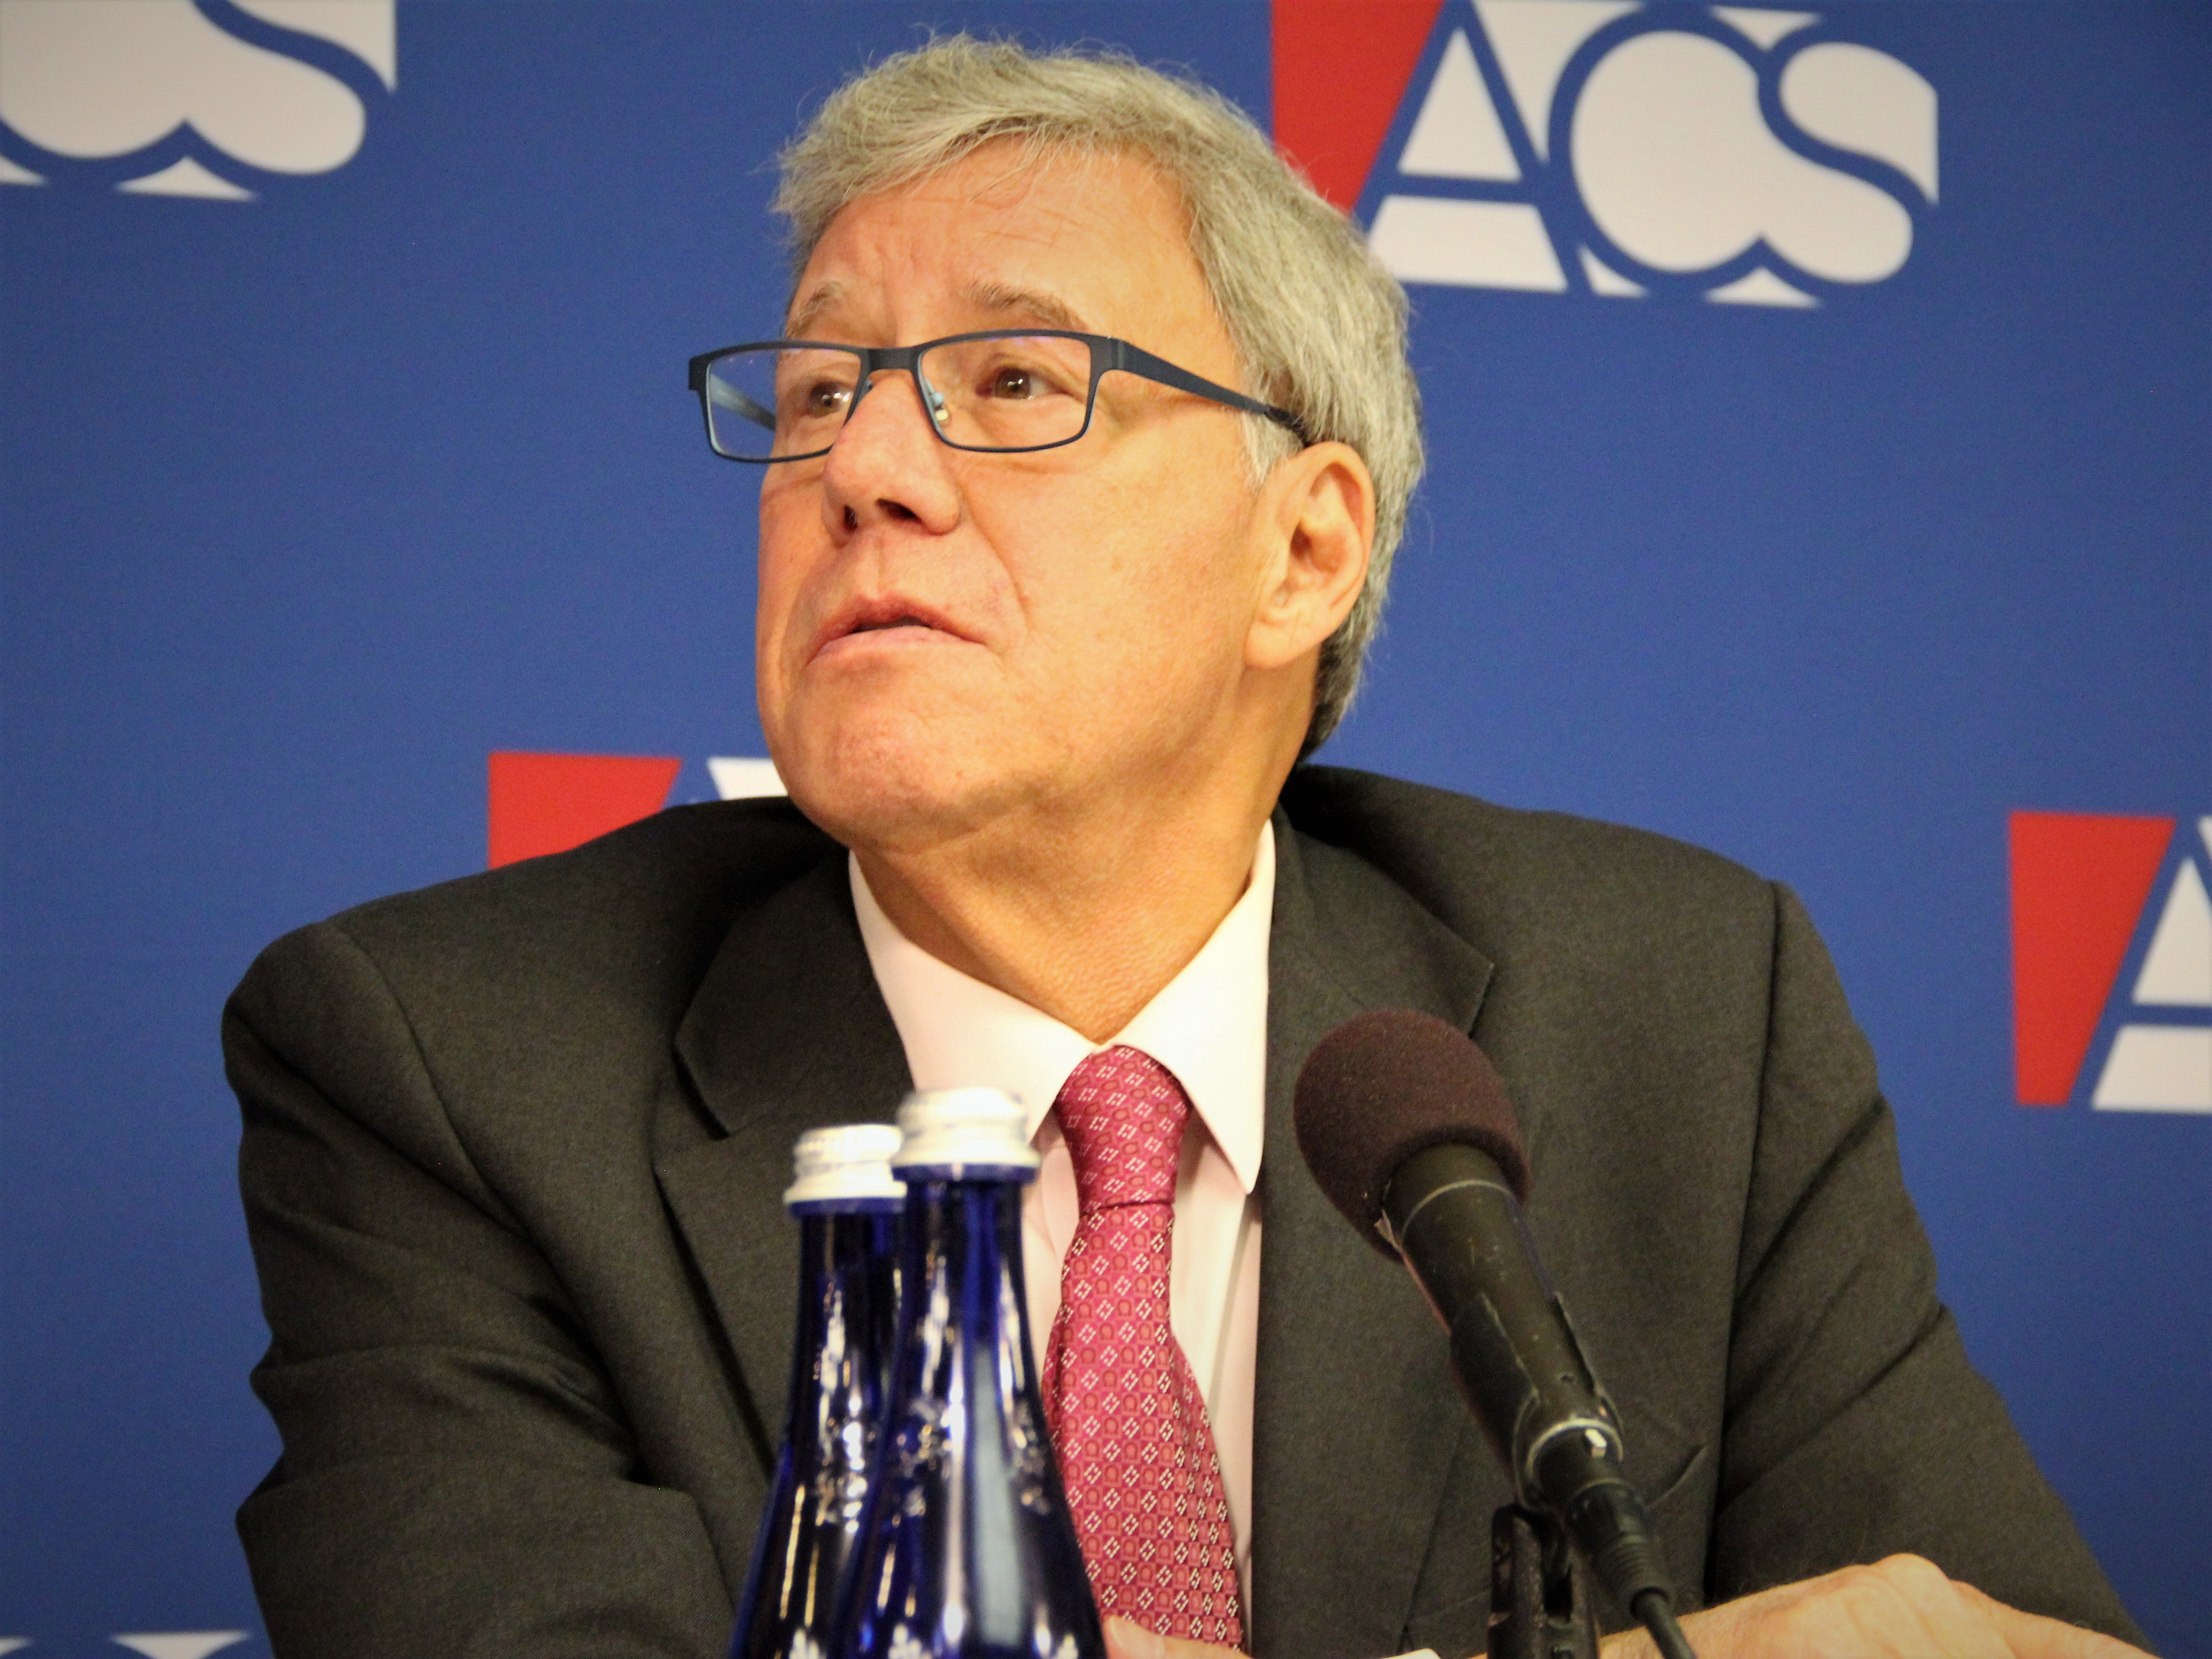 Geoff Stone speaks at the 2018 ACS Supreme Court Preview, September 6 2018